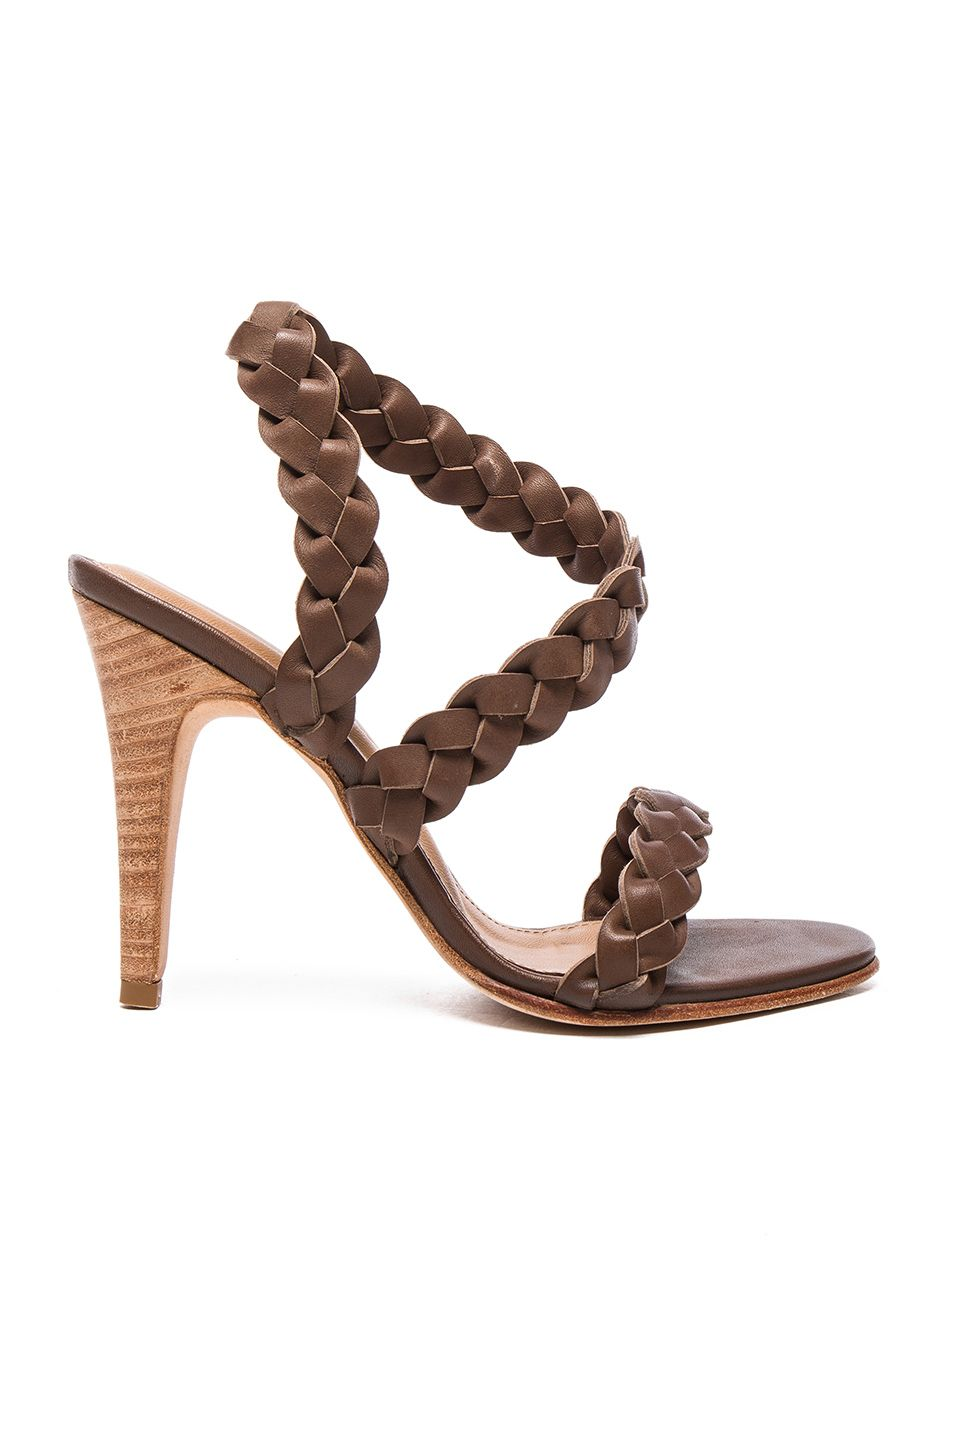 Ulla Johnson Leather Wrap-Around Sandals cheap price buy discount reliable cheap online outlet low shipping cost cheap price official site DYj94X8